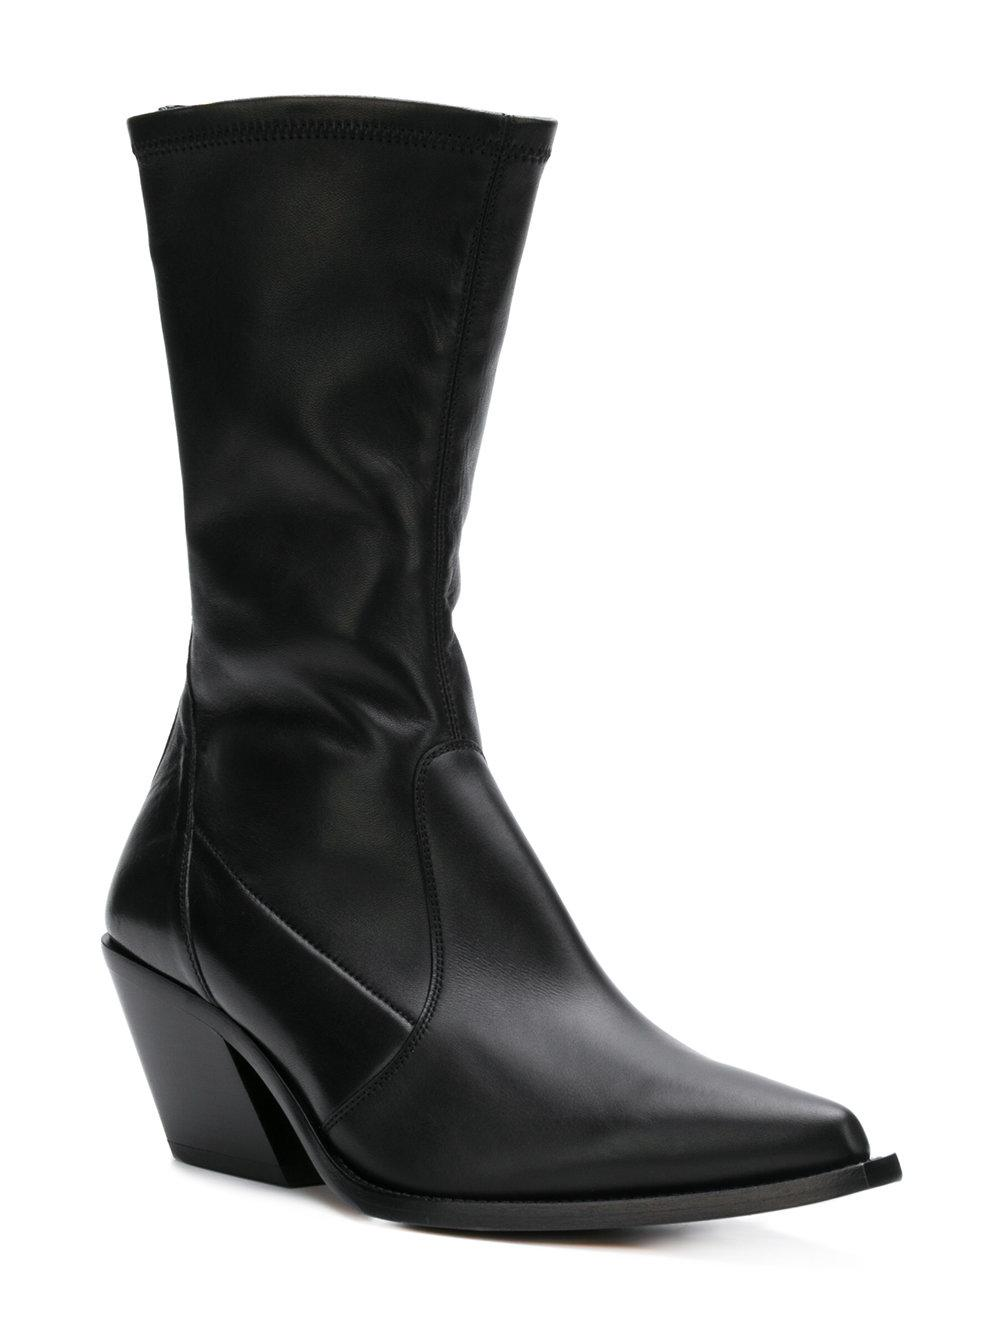 8778453ddbbe Lyst - Givenchy Rear-zip Pointed Boots in Black